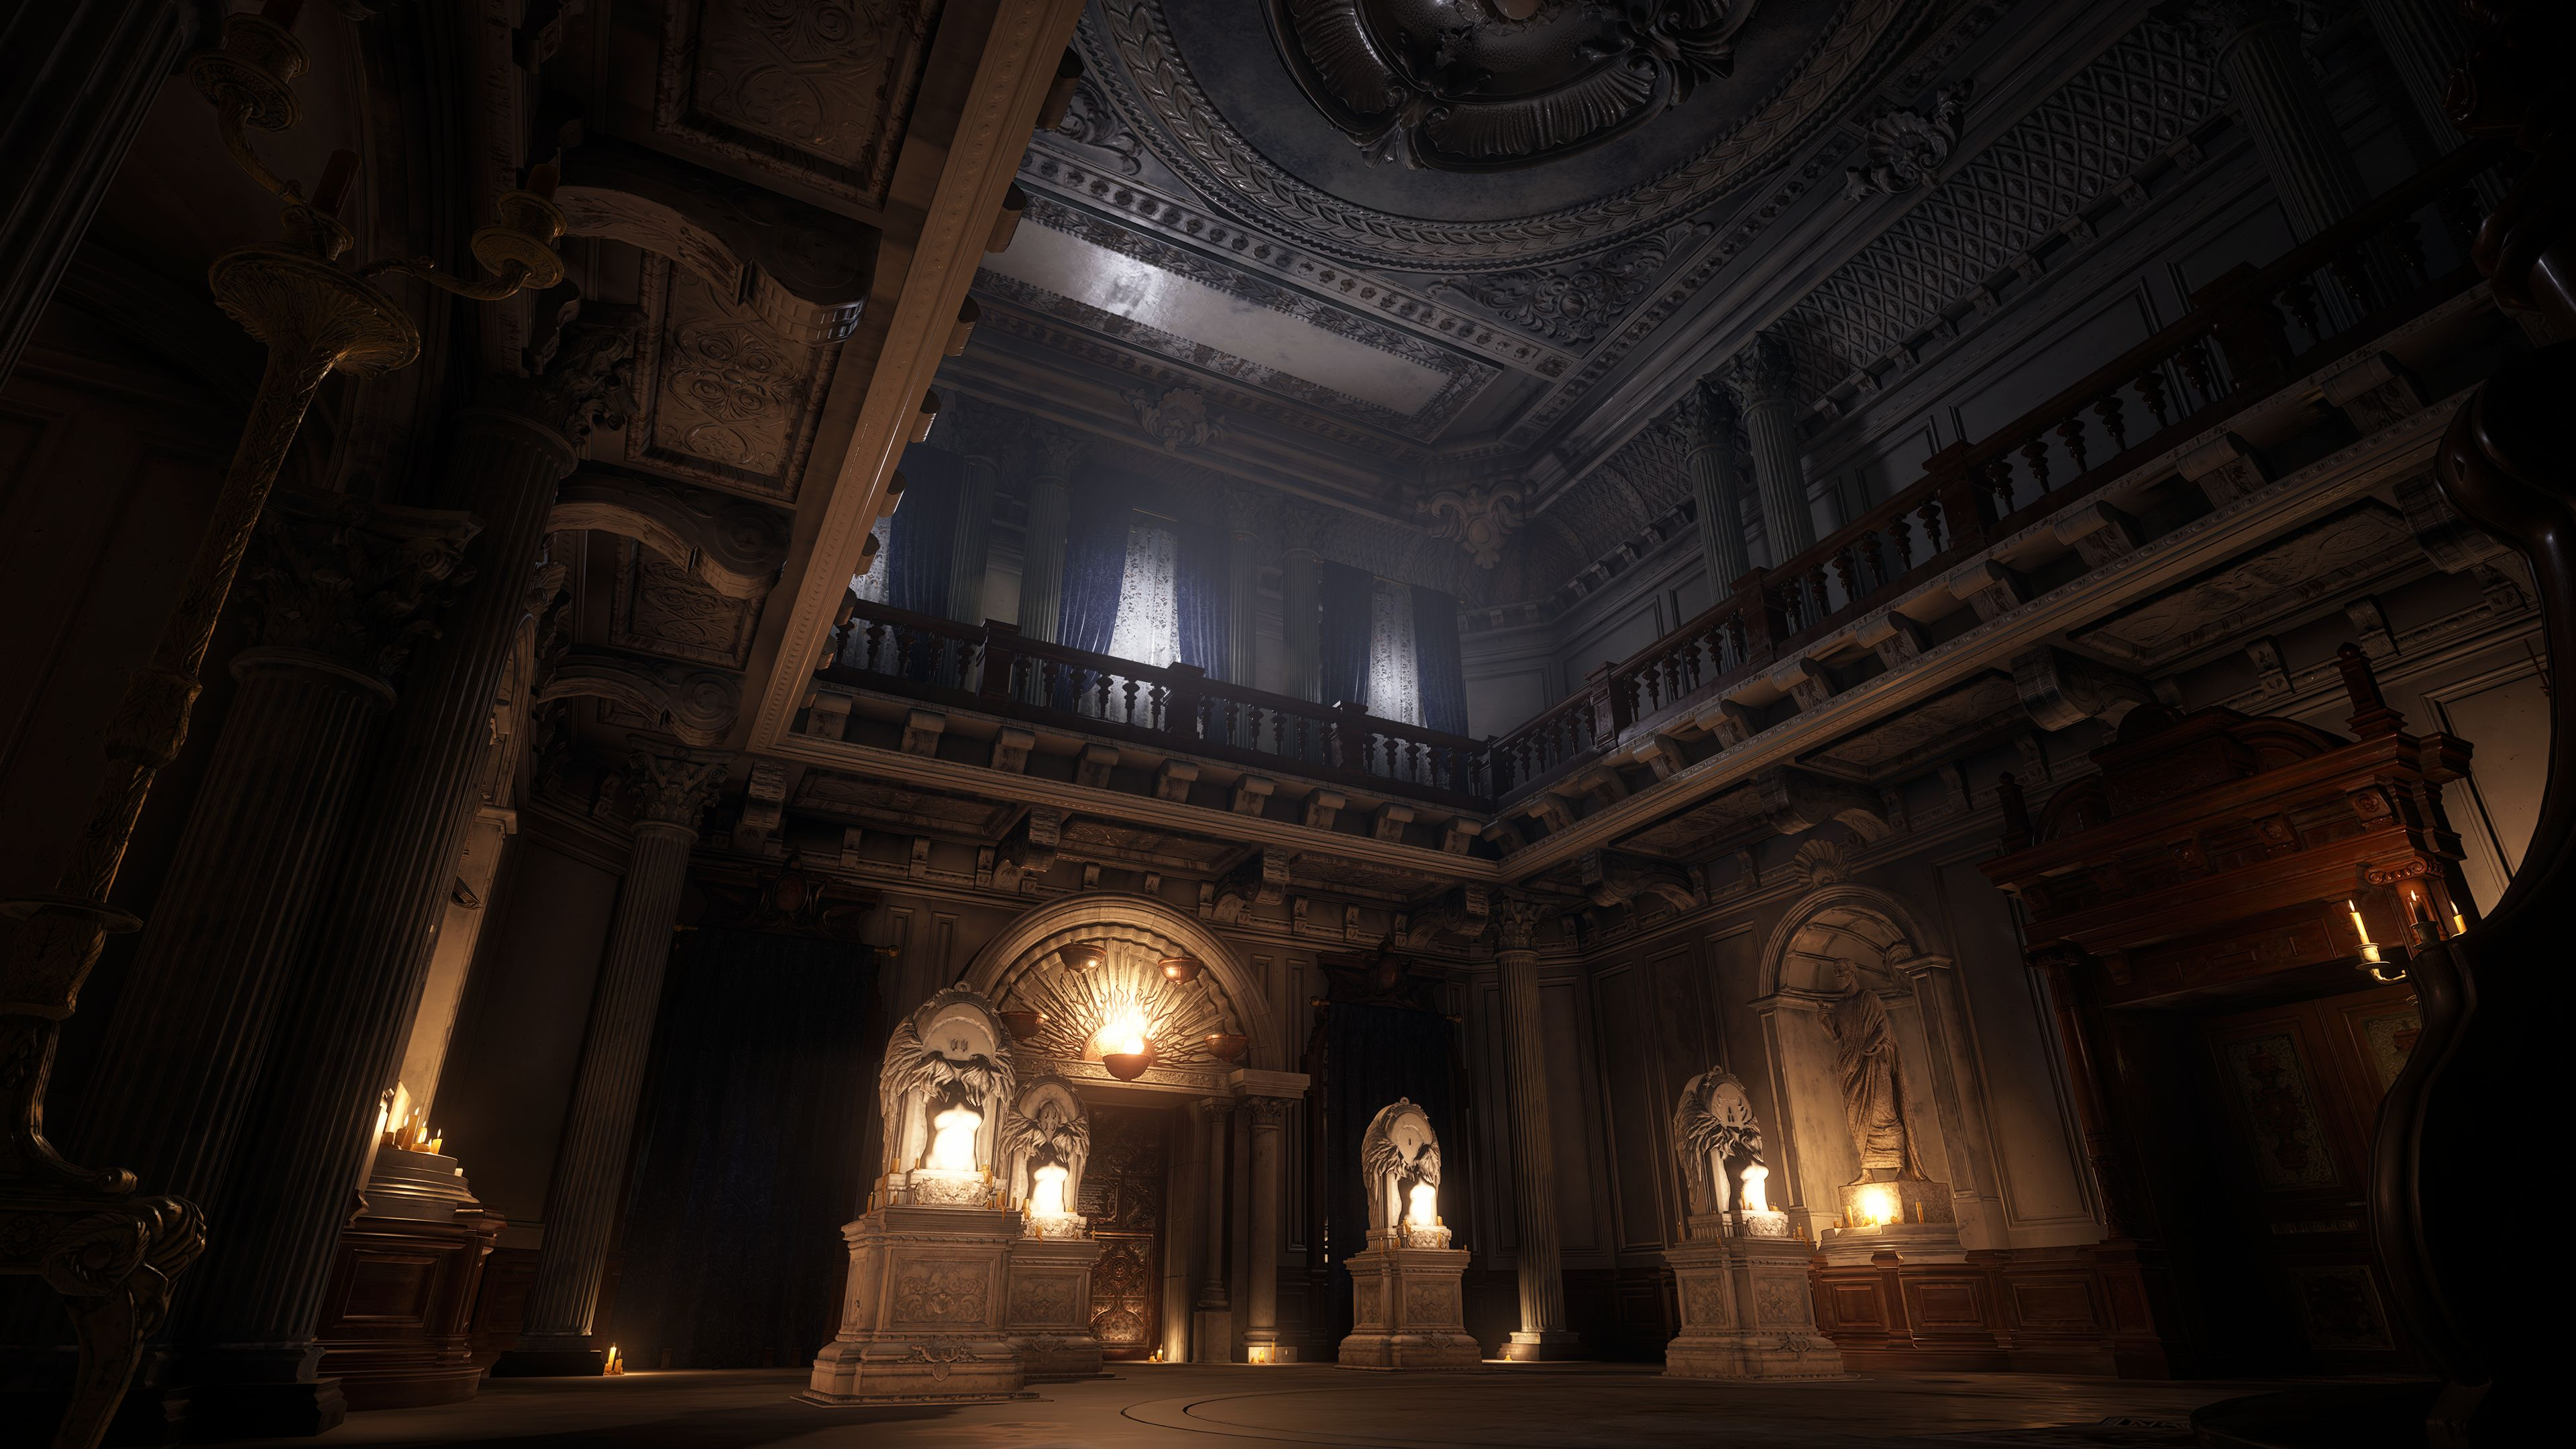 Resident Evil Village - the interior of Dimitrescu castle. A two story room with a second bloor ring balcony is lit by candles.